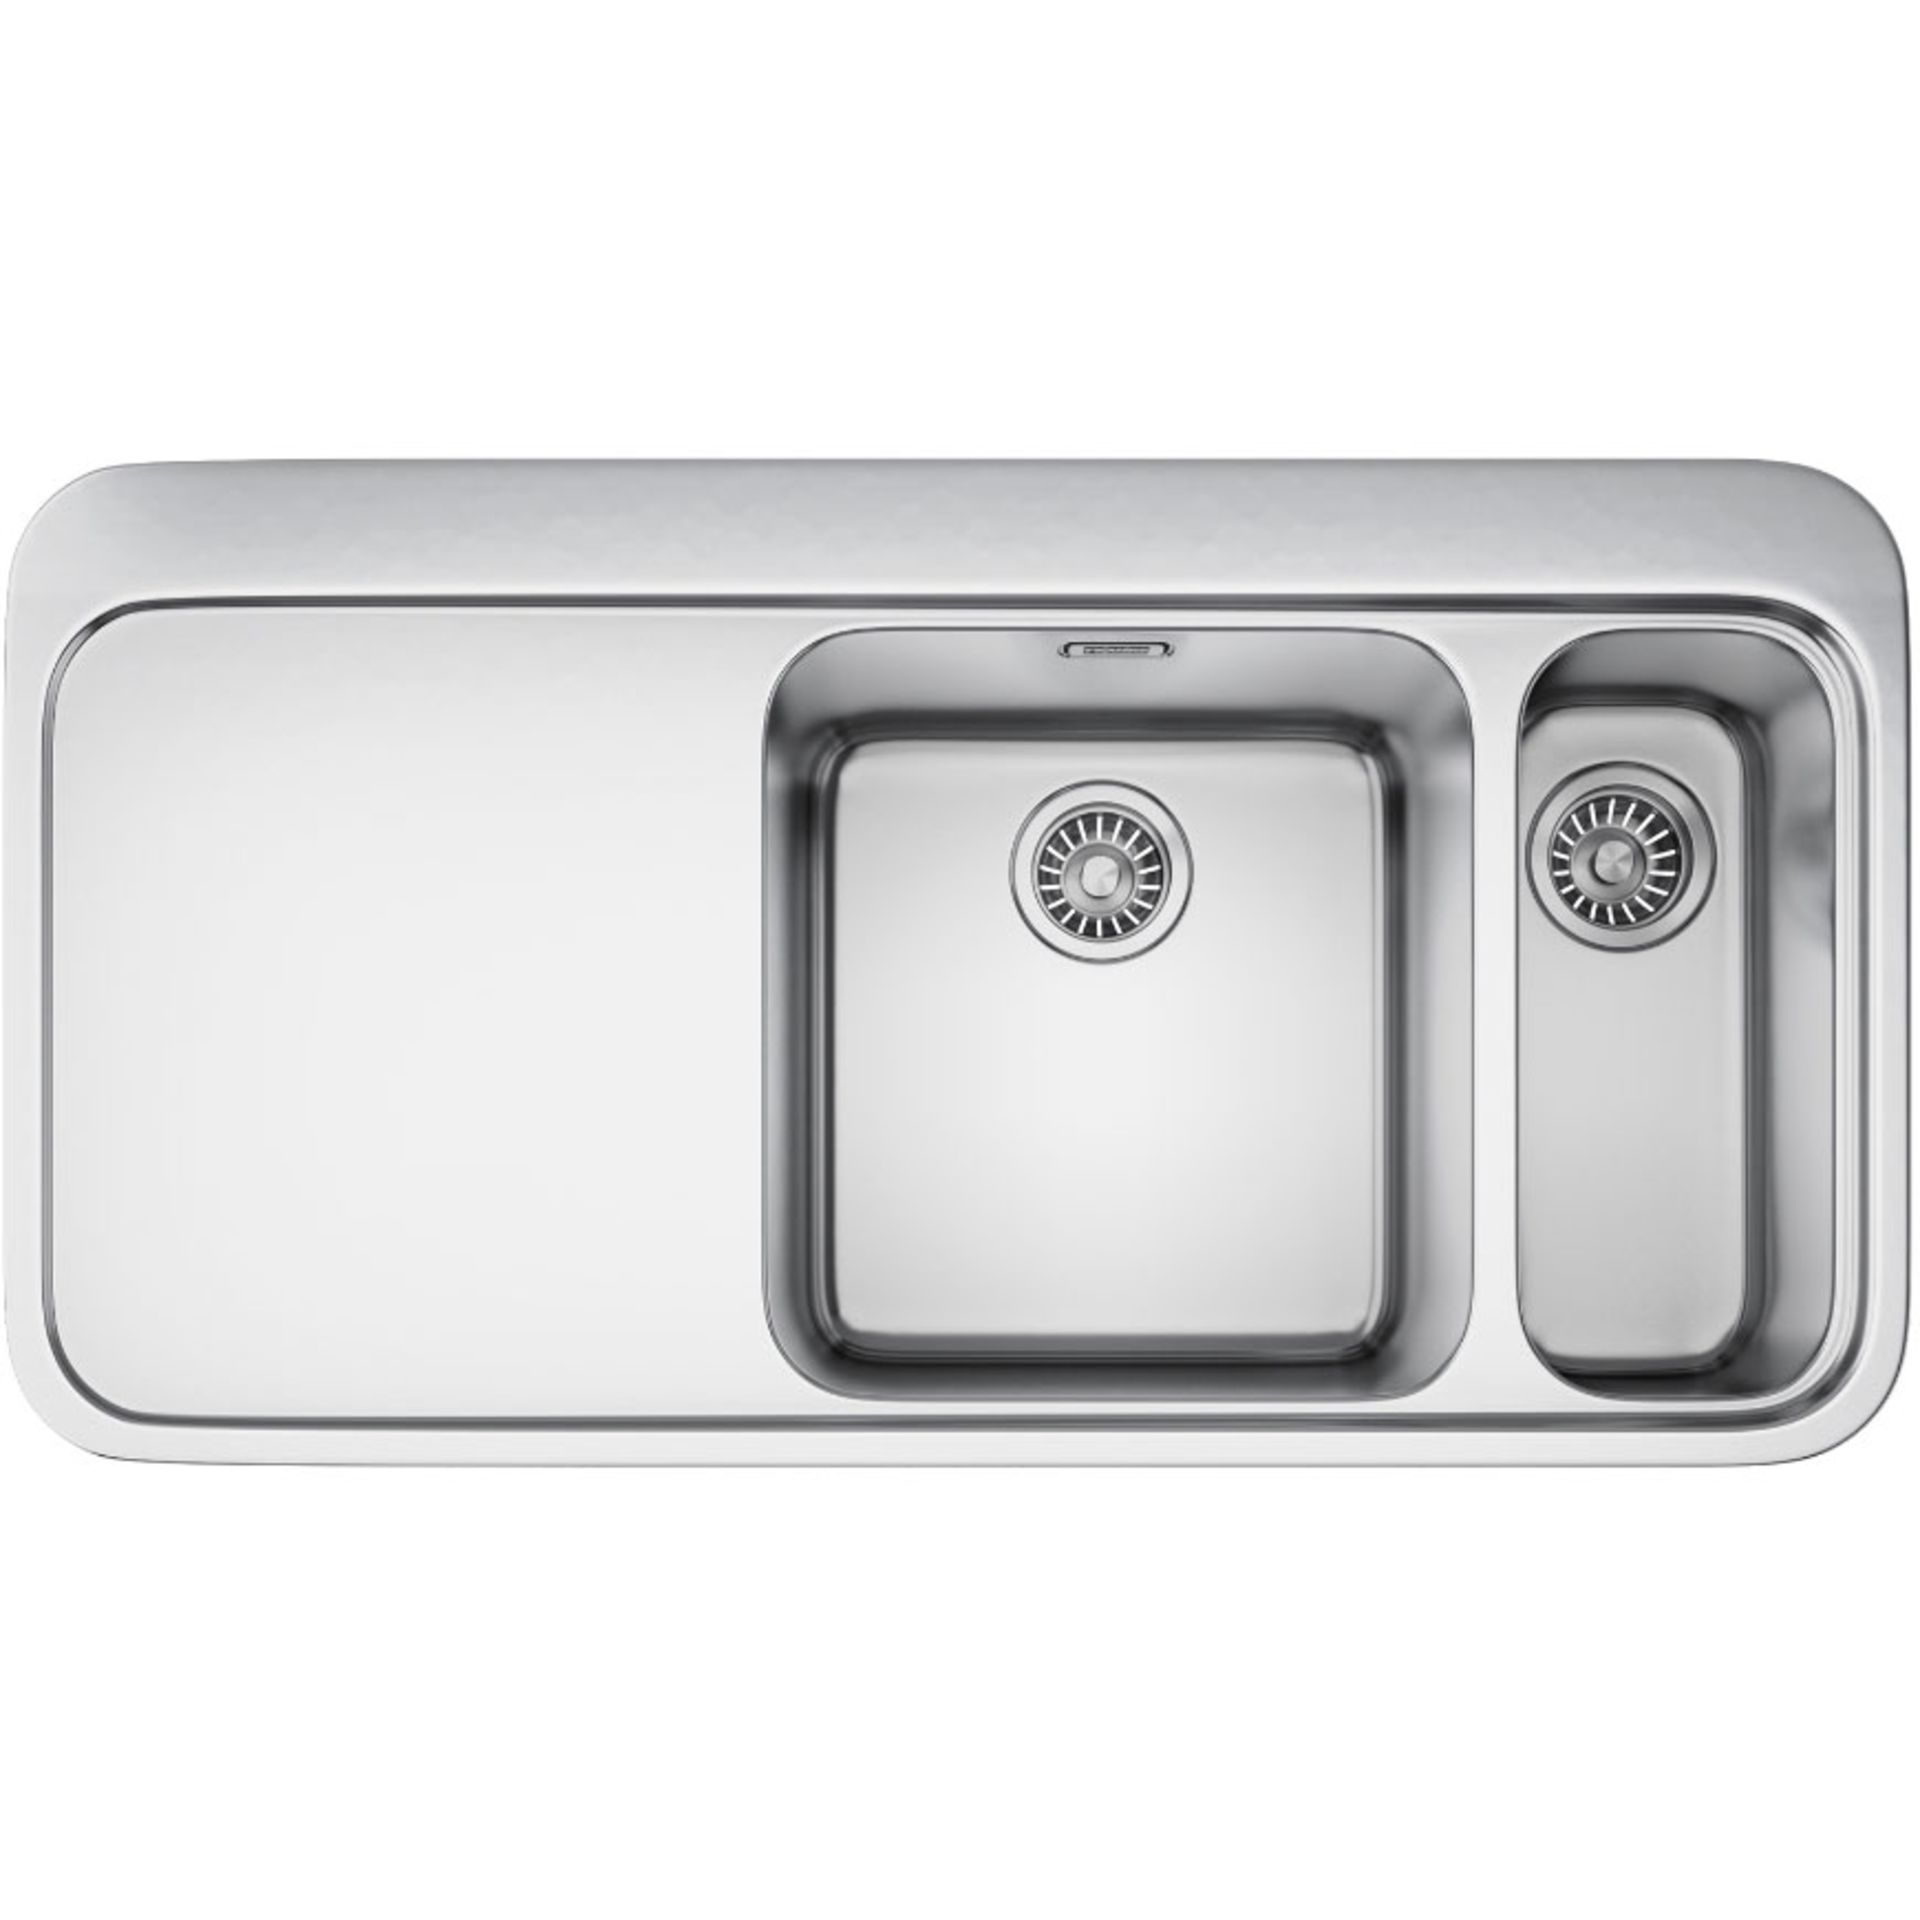 Boxed Brand New Factory Sealed Franke Sink- Model- SNX 261 965x510mm, RRP-£675.00